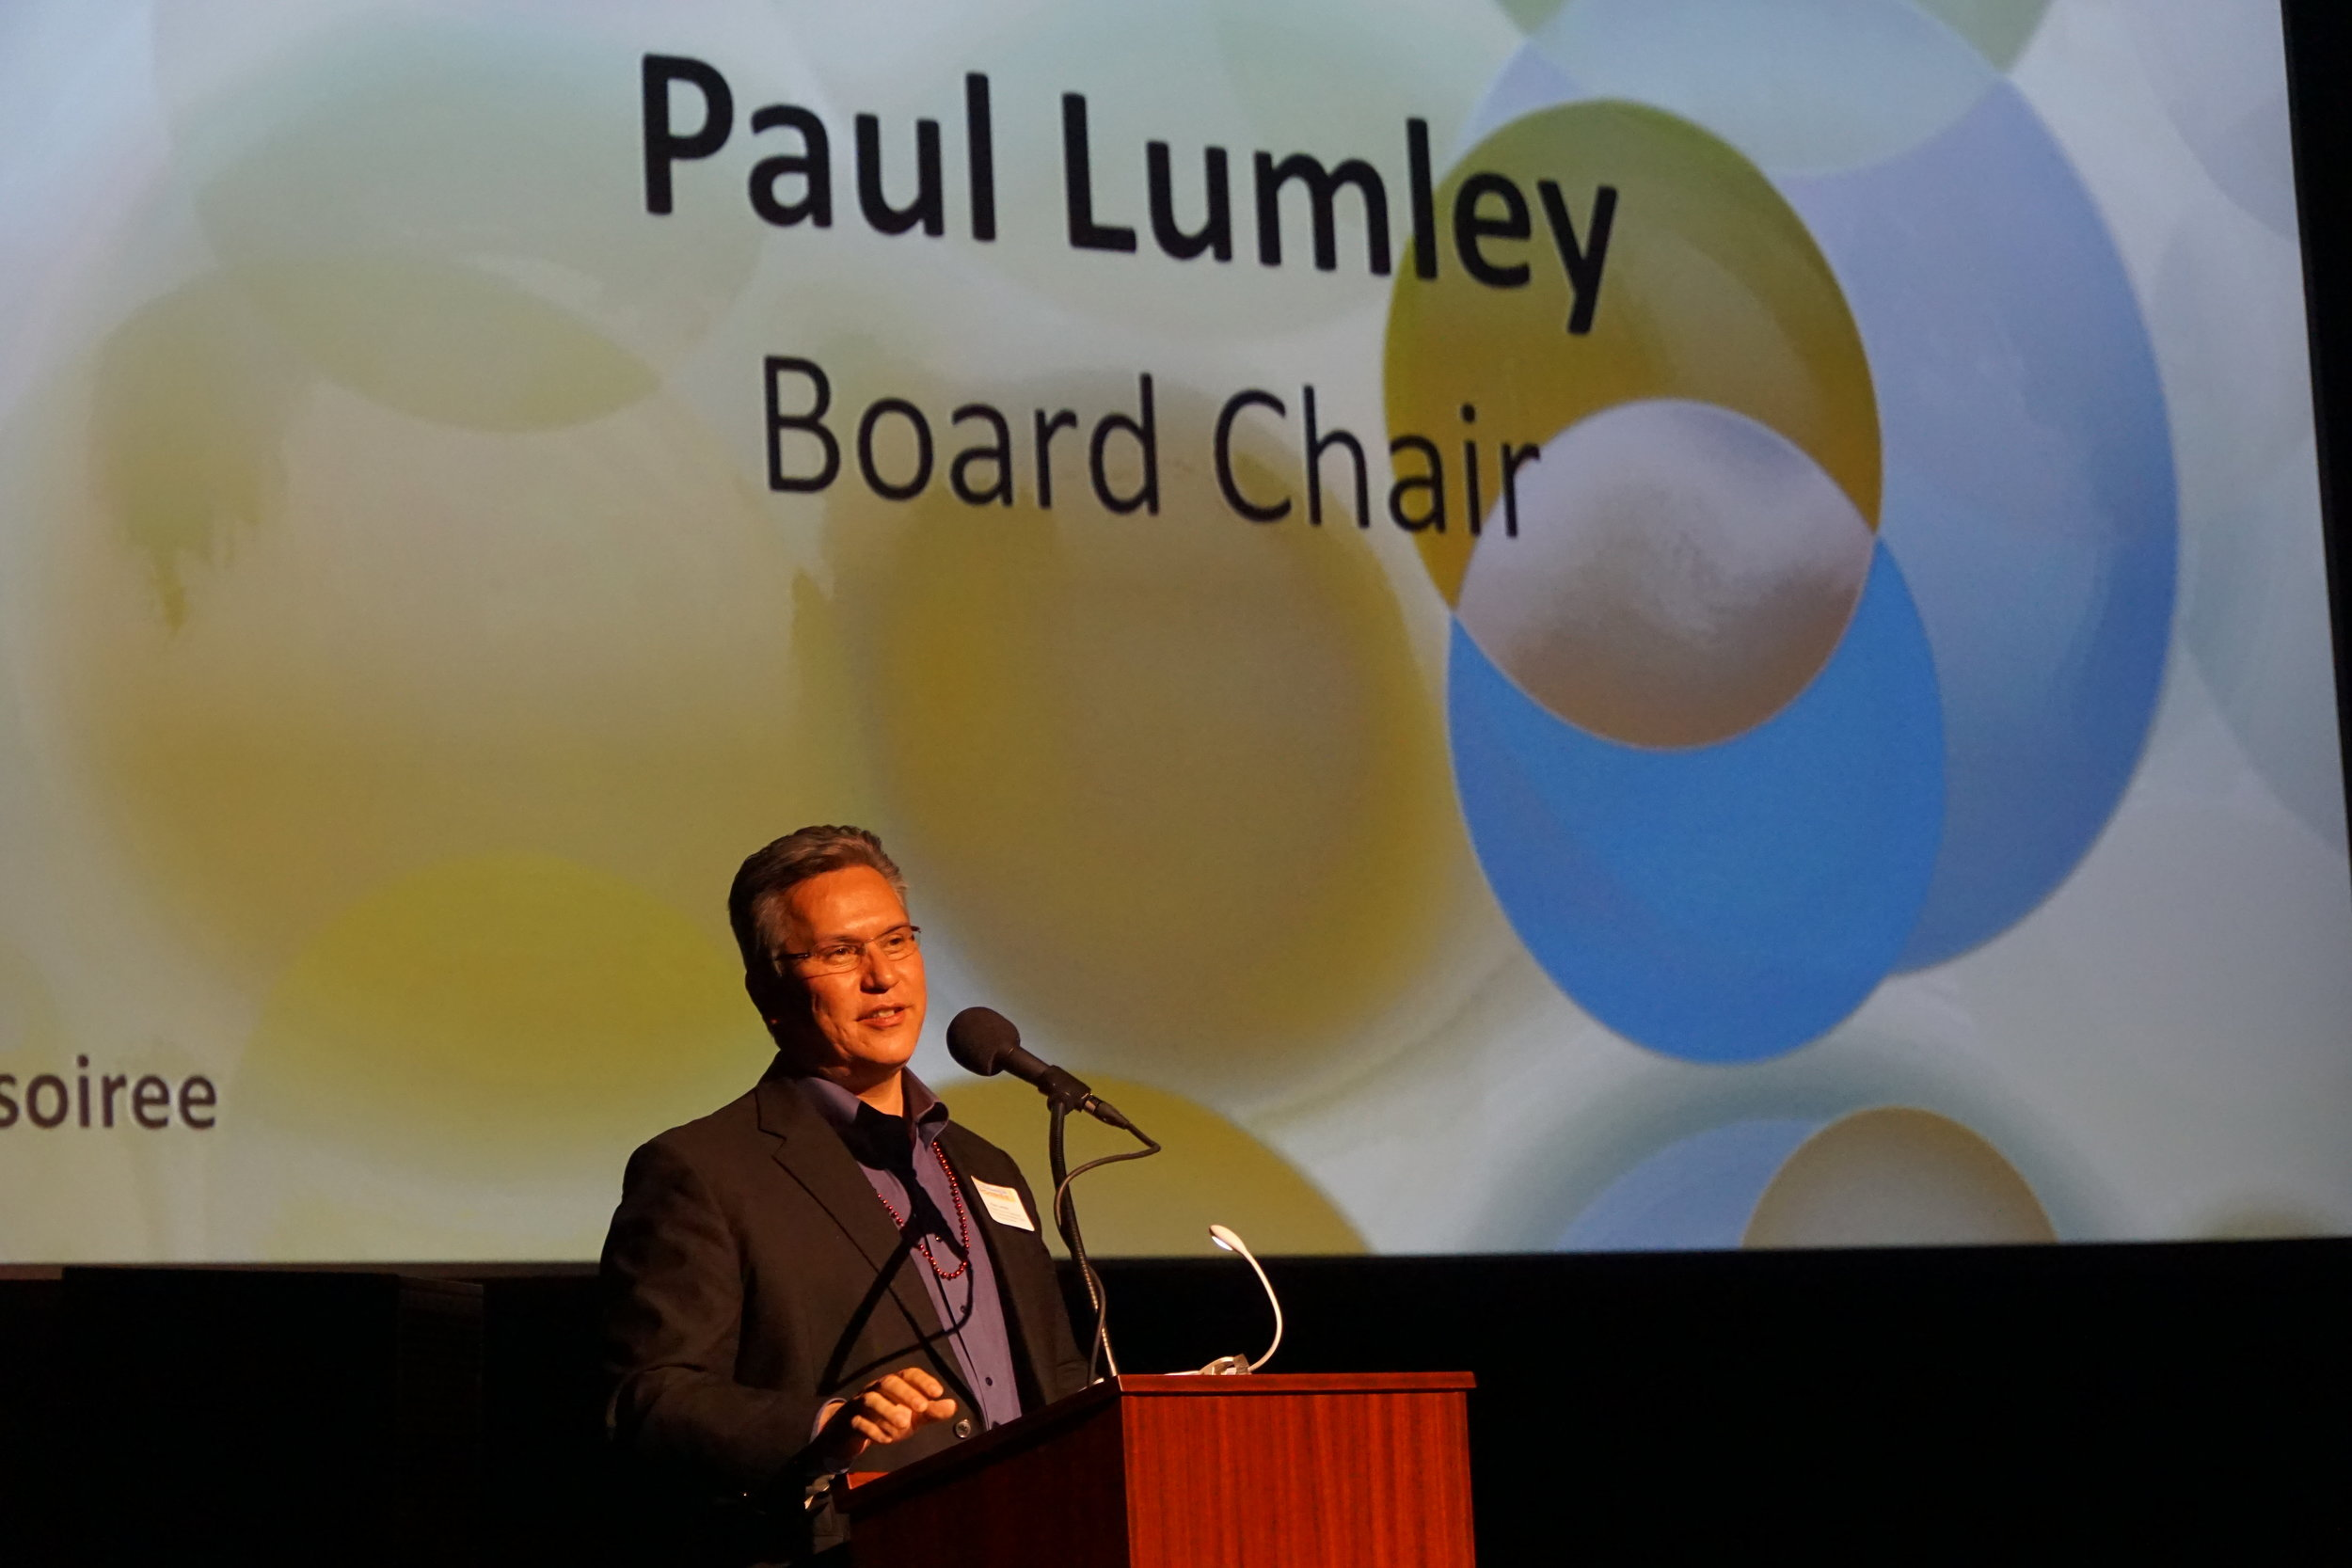 Paul Lumley, Executive Director of NAYA Family Center & CCC Board Chair